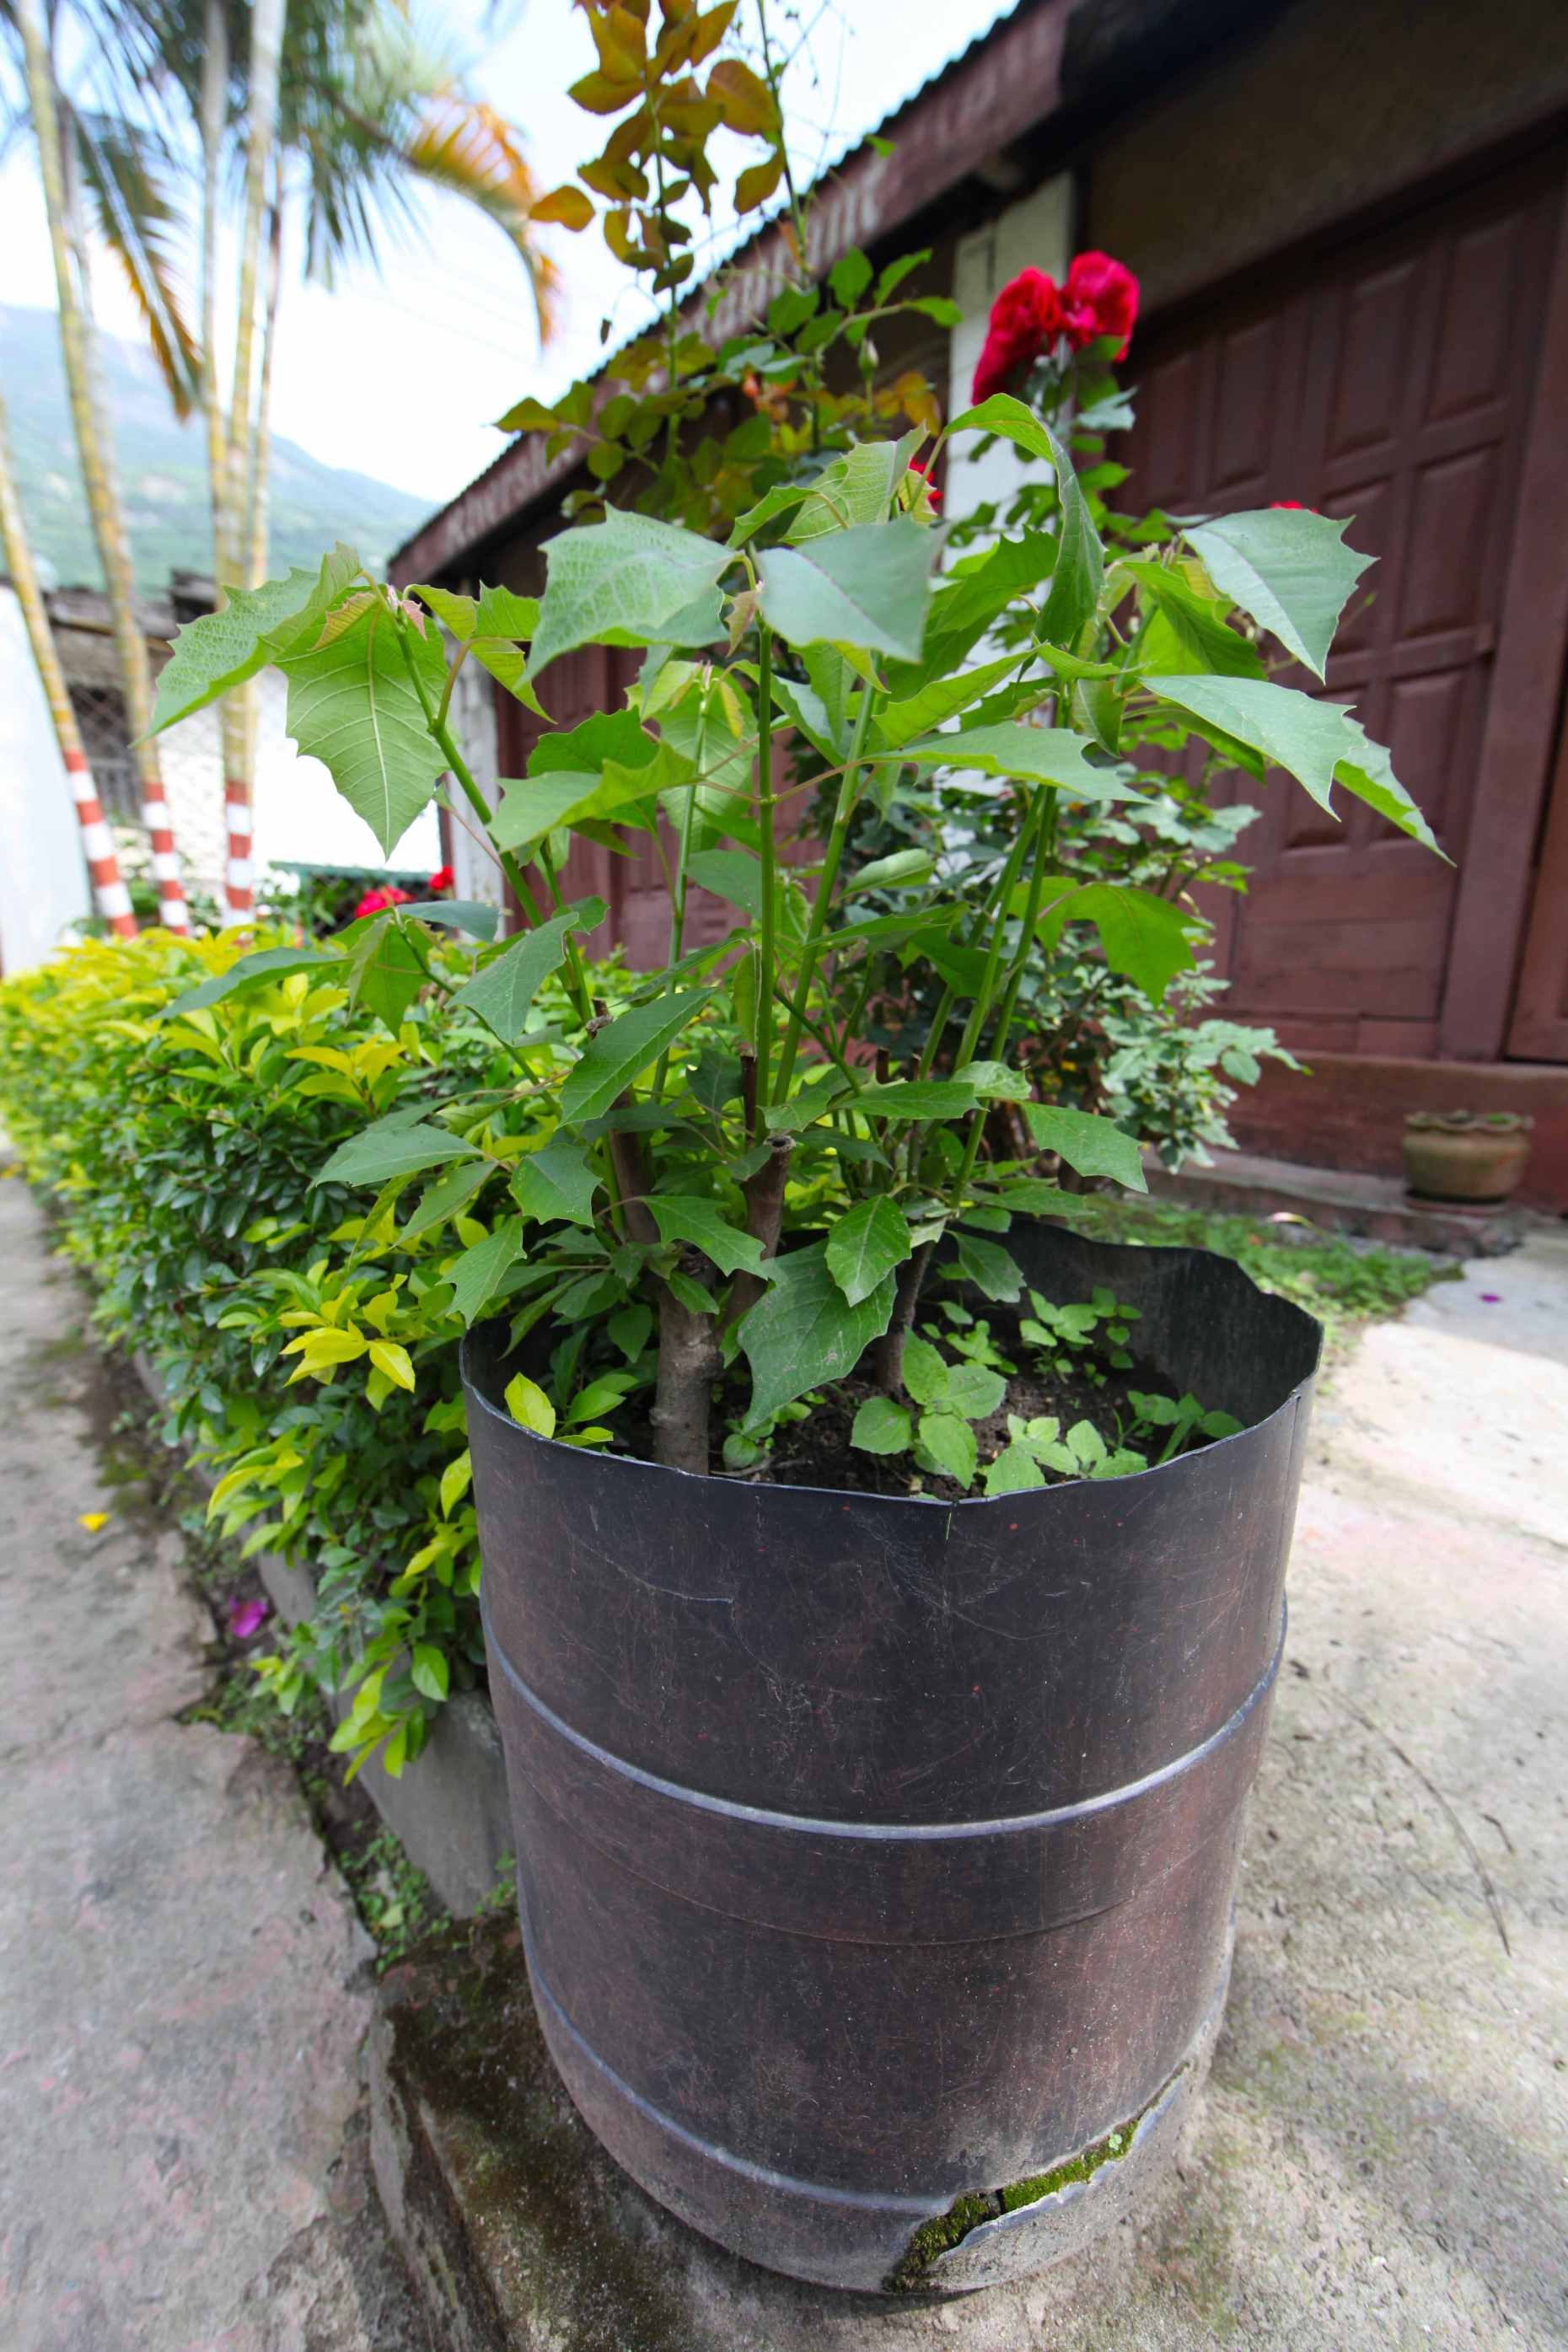 Large plastic containers make great container gardens. Think twice before you throw plastic receptacles away as someone might like to reuse it.